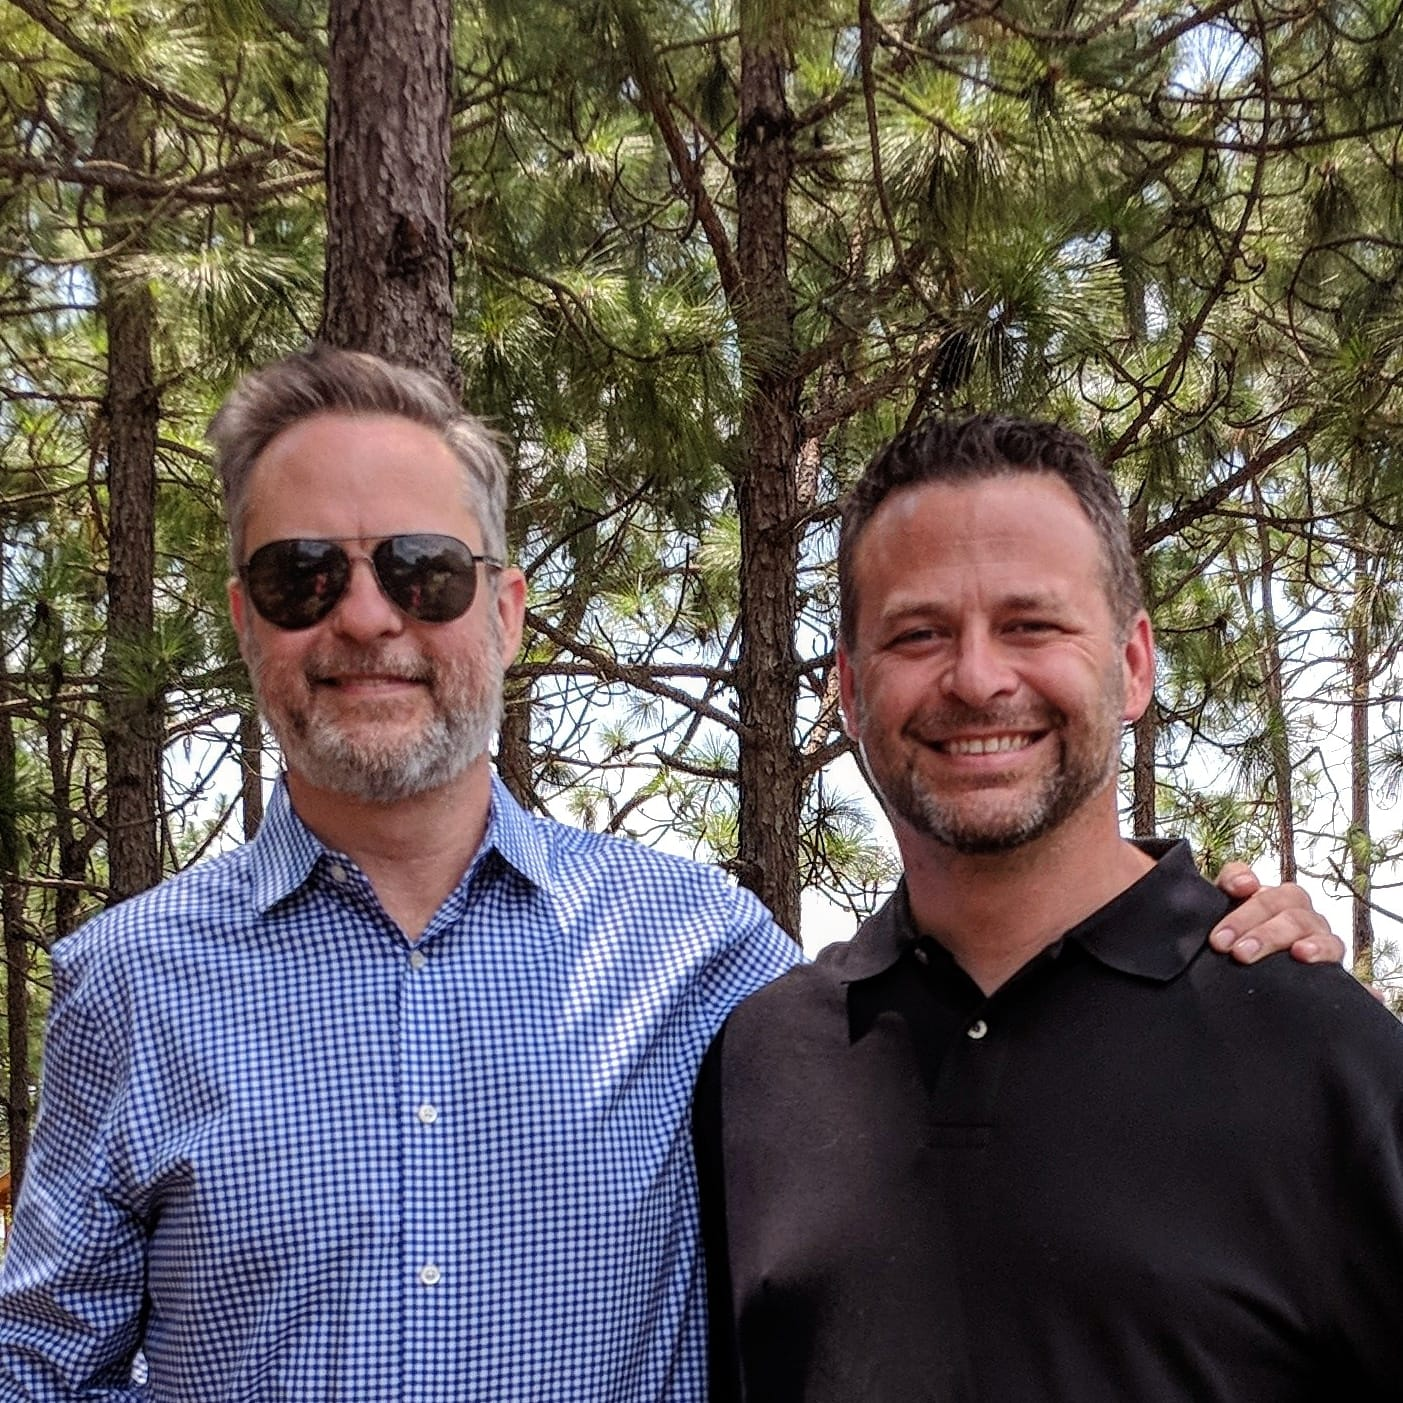 A picture of two brothers standing near pine trees in Georgia